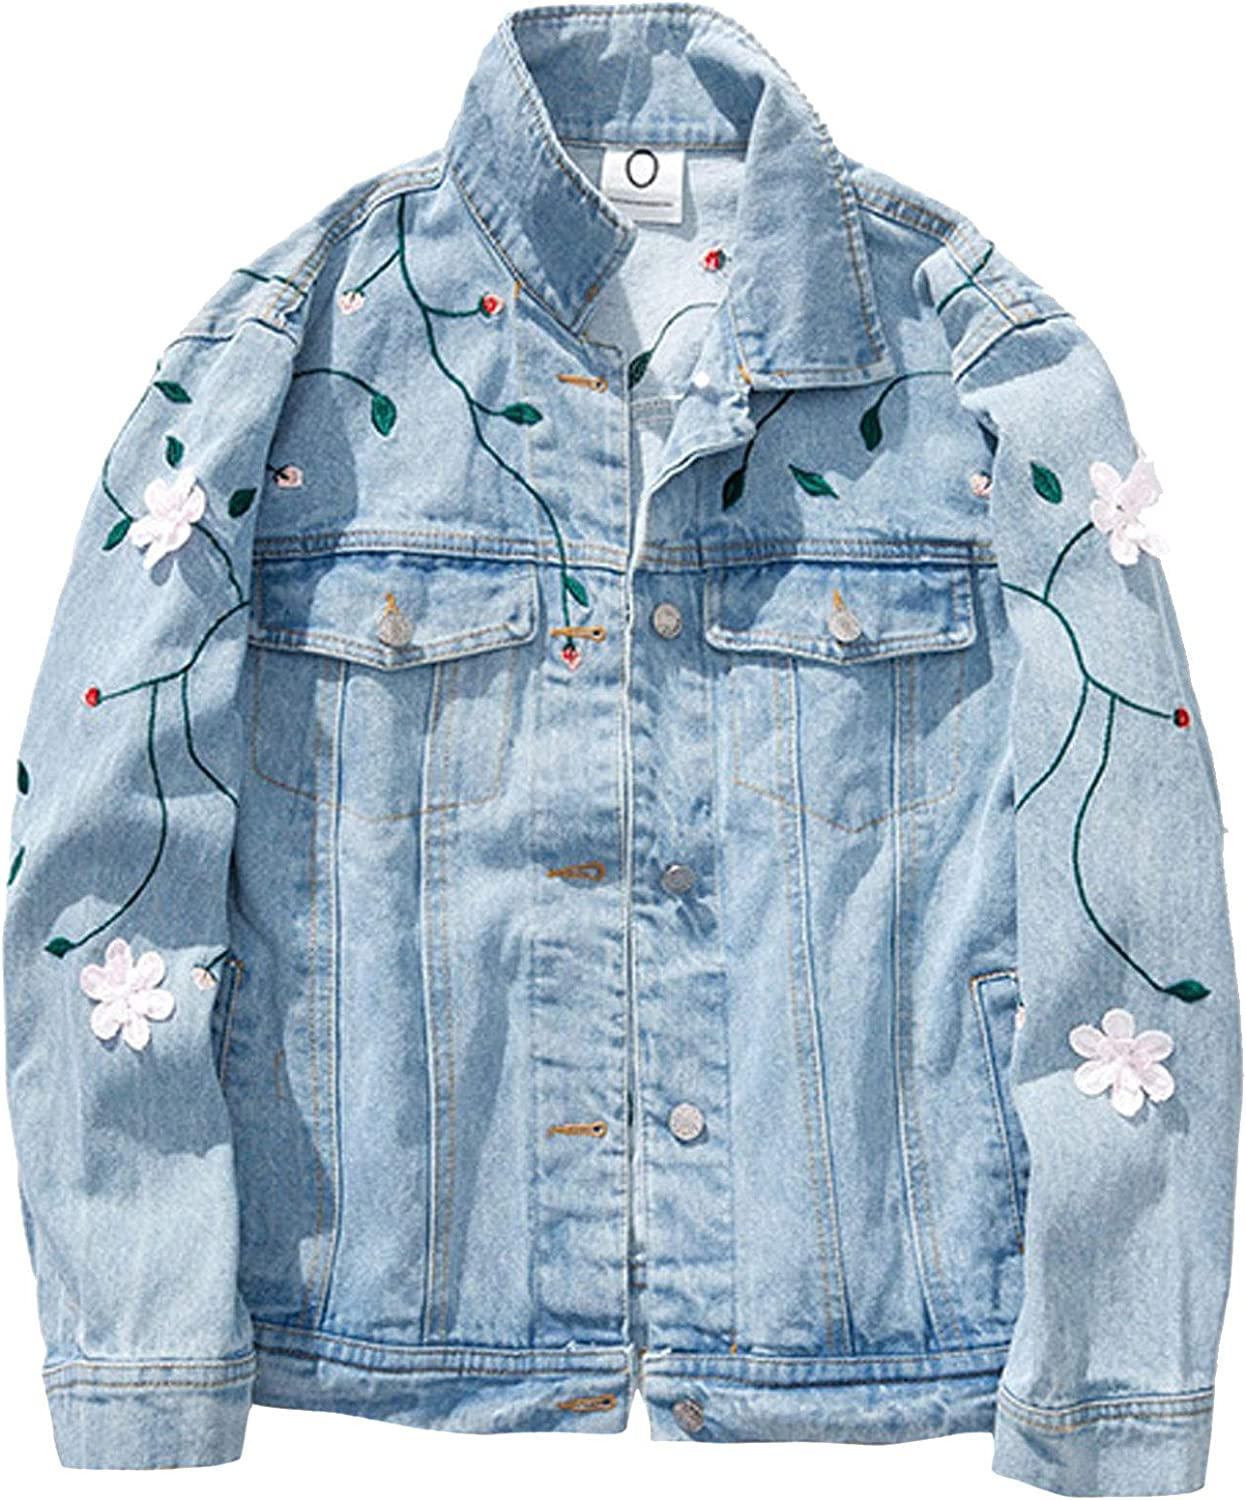 Flygo Women's Casual Embroidered Floral Denim Jacket Loose Long Sleeve Basic Jean Coat